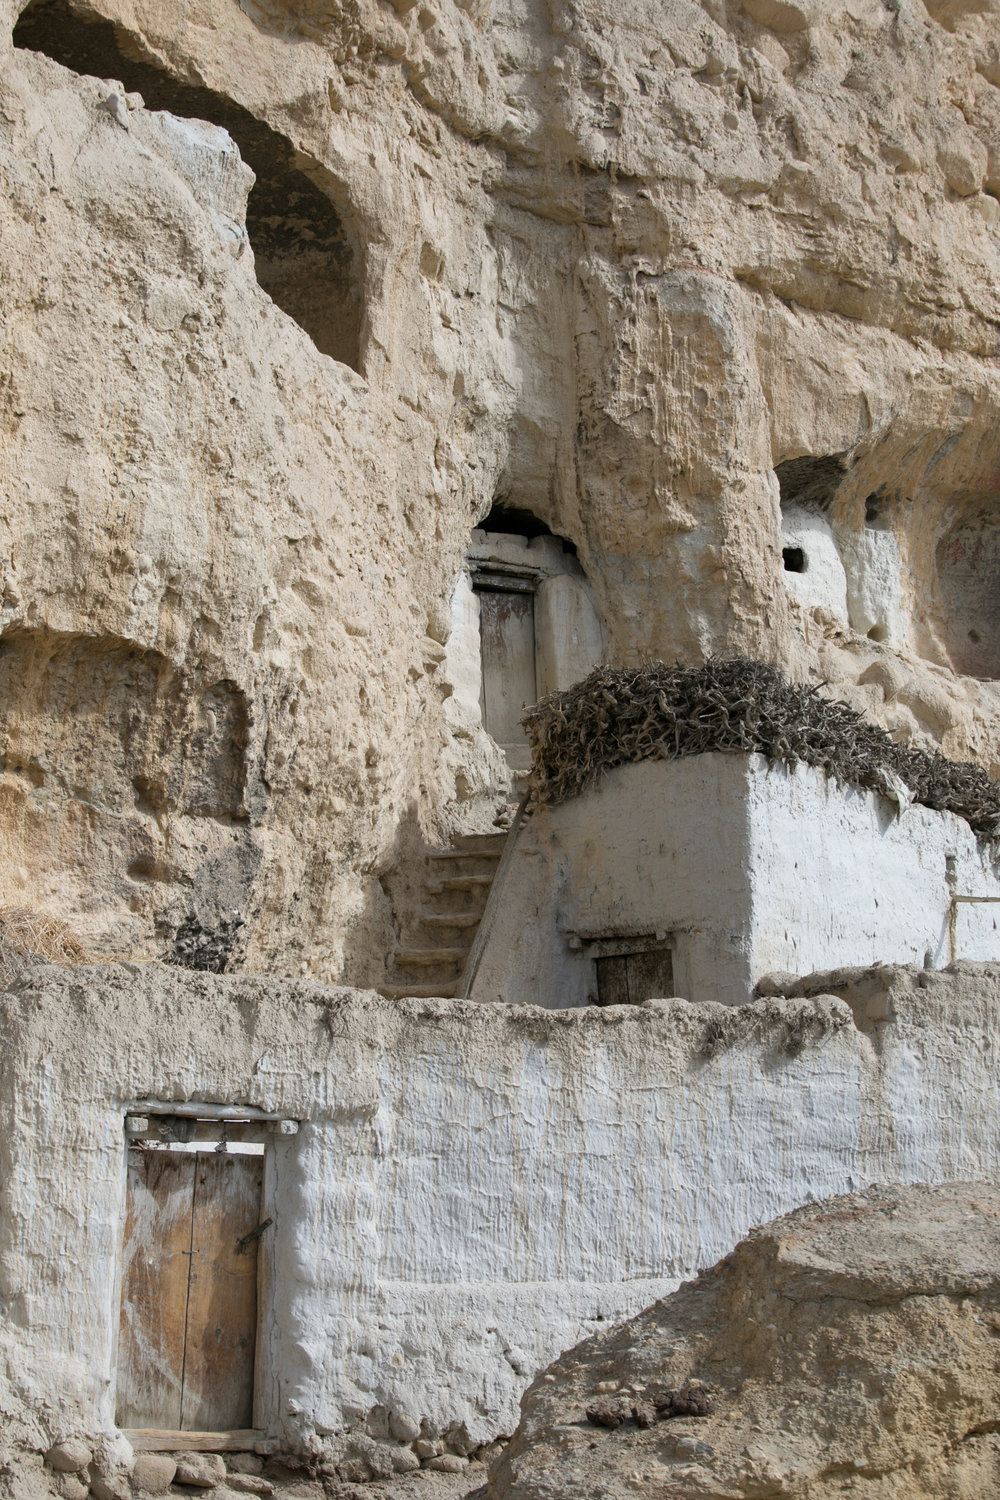 A home built around a cave dwelling.